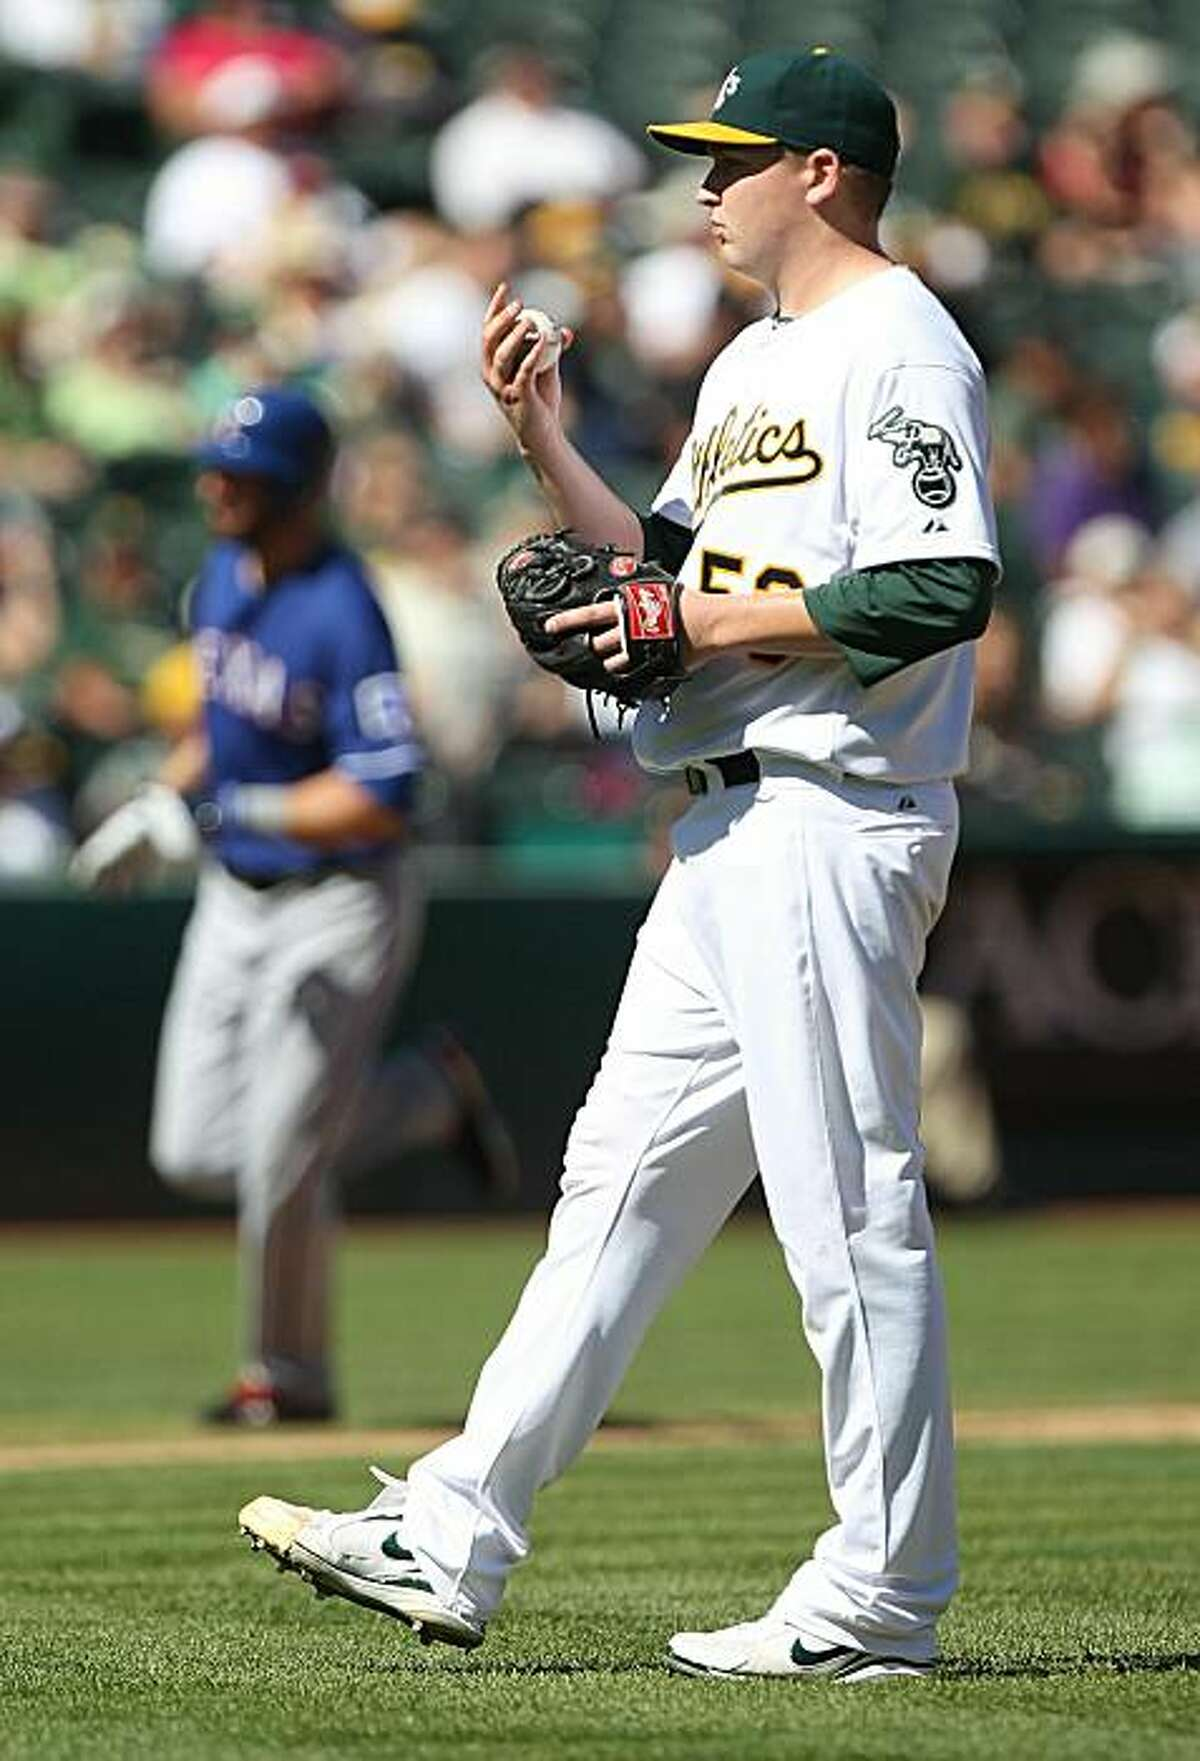 OAKLAND, CA - SEPTEMBER 26: Jeff Francoeur #21 of the Texas Rangers rounds the bases after hitting a home run off of Trevor Cahill #53 of the Oakland Athletics during a Major League Baseball game at the Oakland-Alameda County Coliseum on September 26, 2010 in Oakland, California.